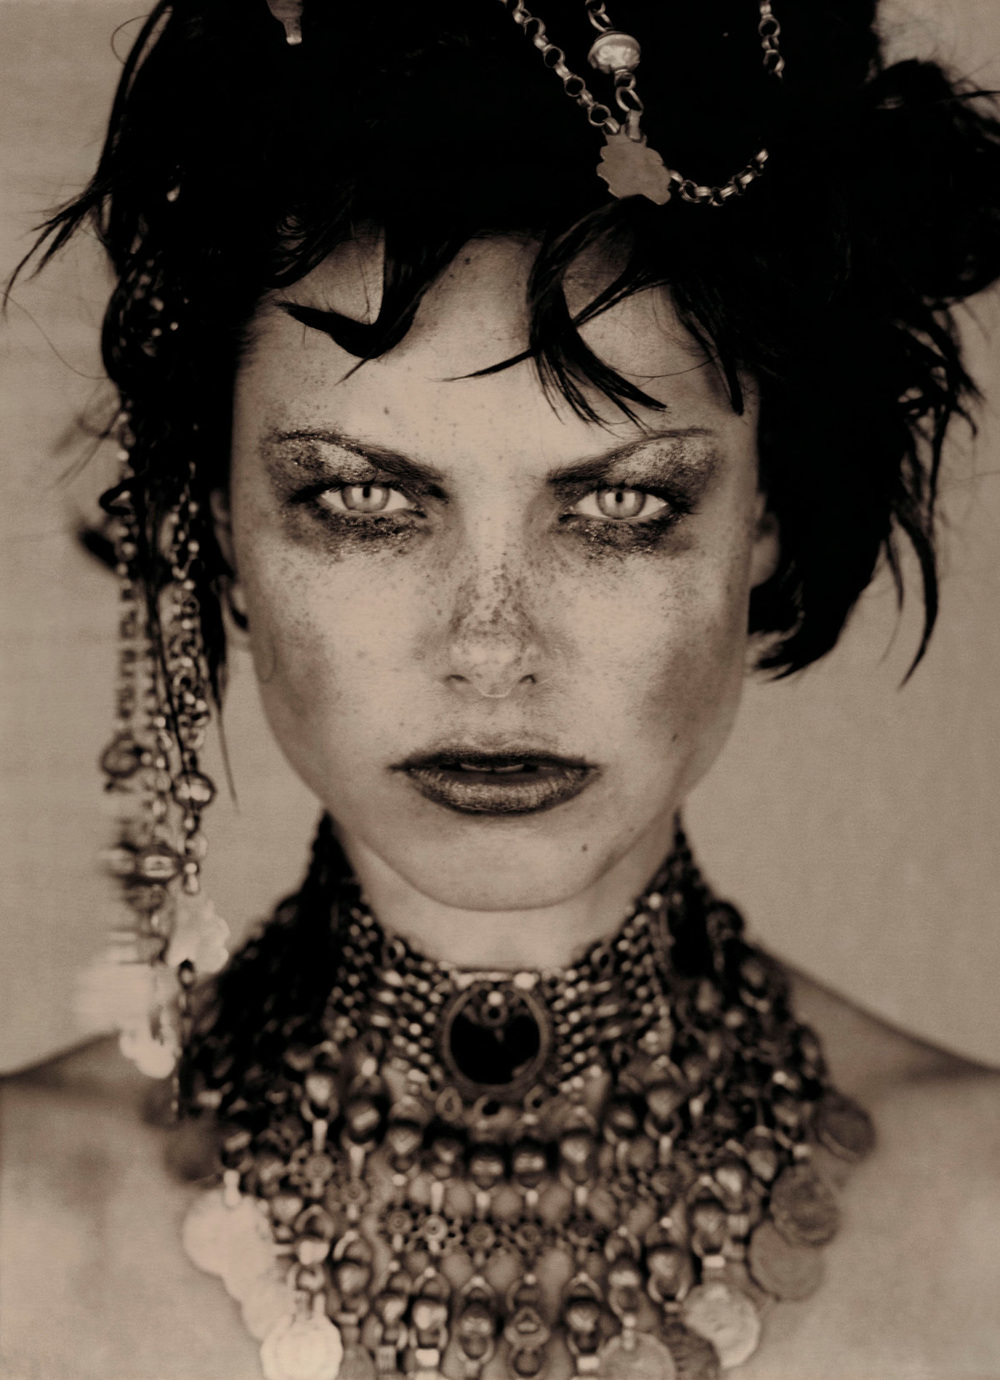 Bonne The Face - Marc Lagrange